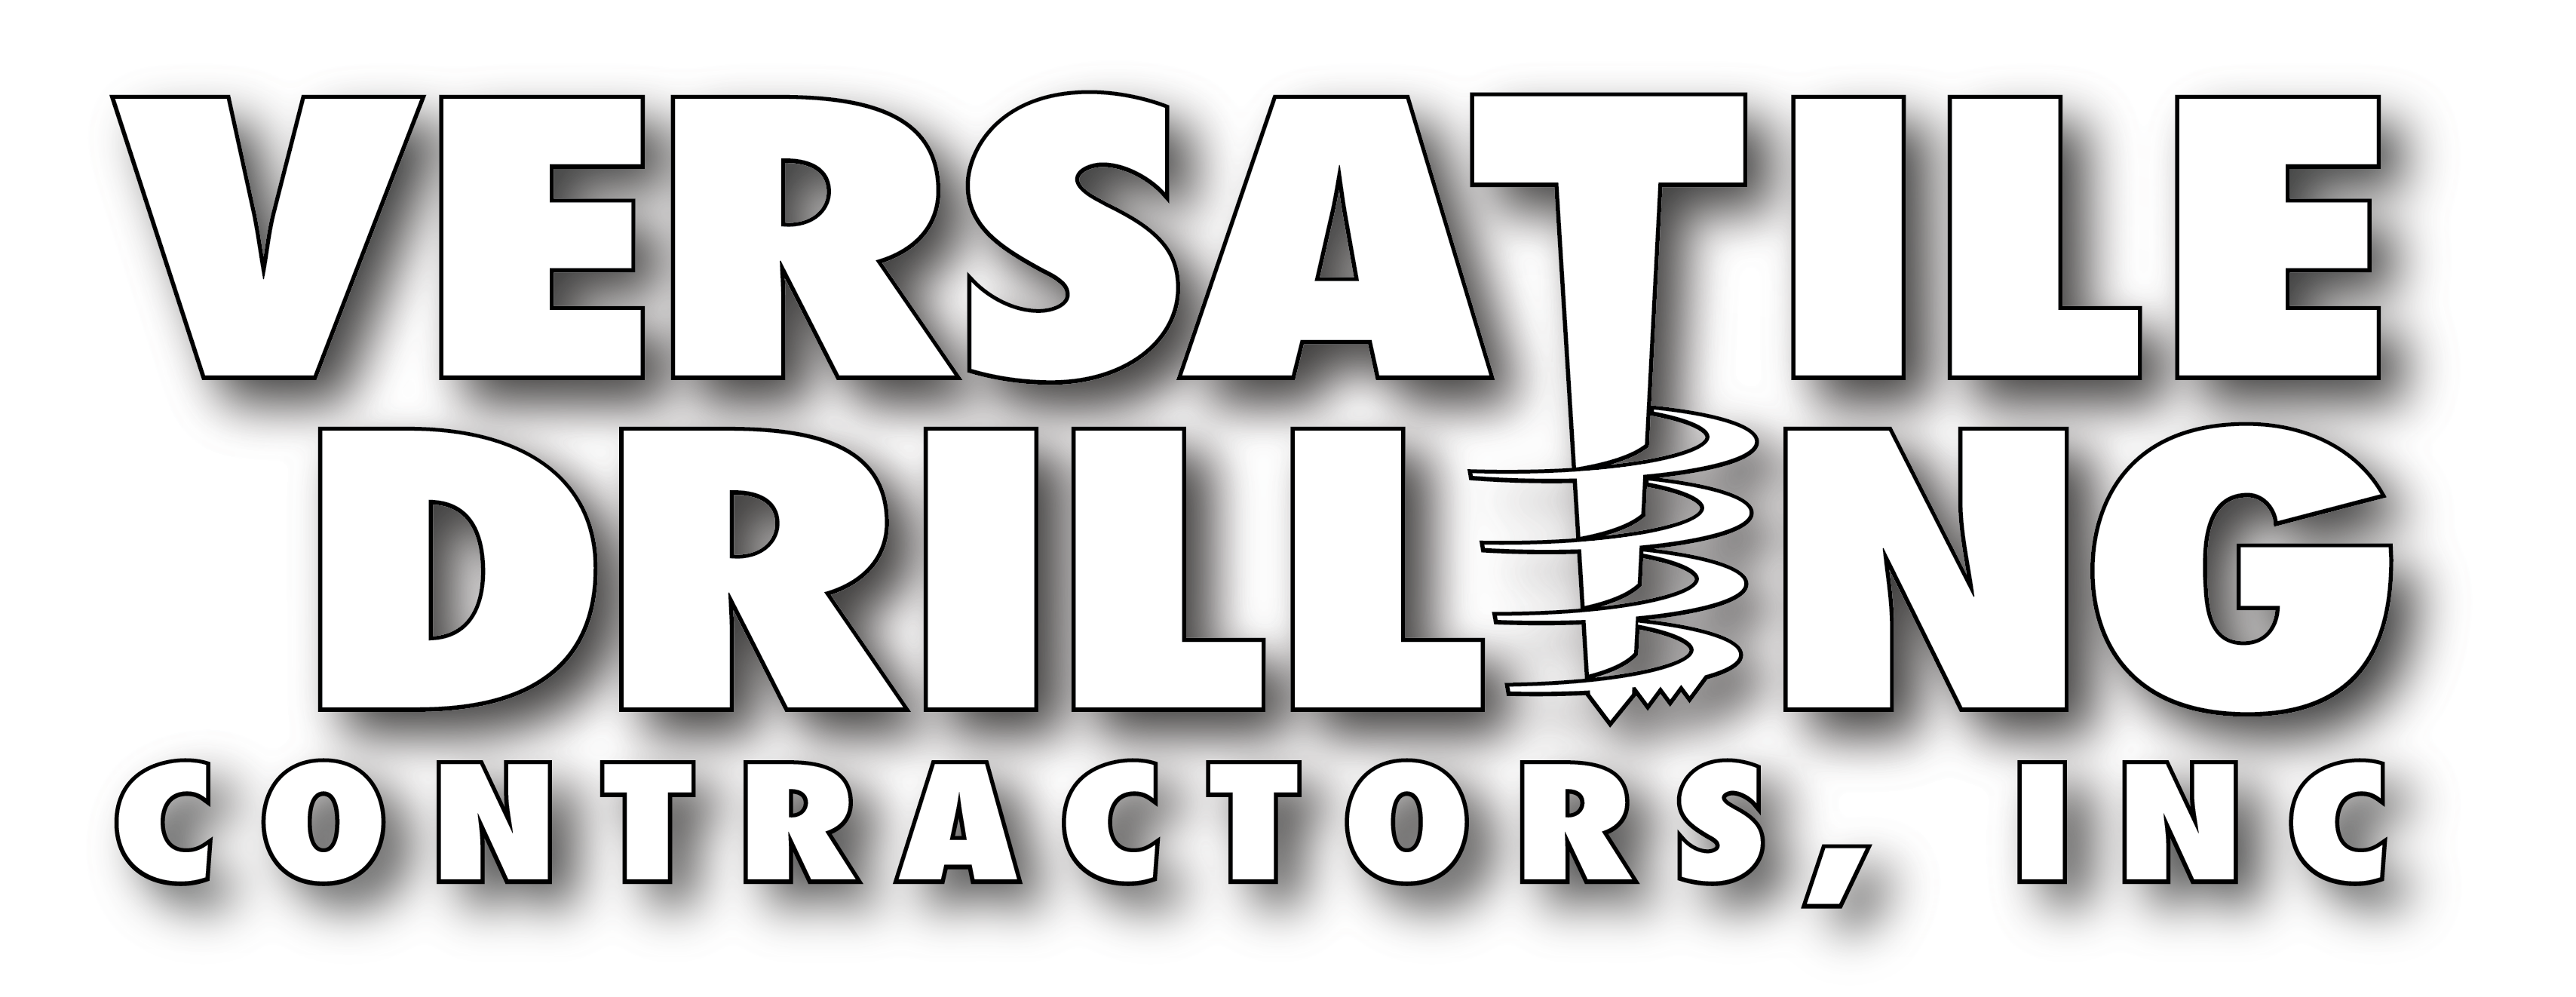 Versatile Drilling - Drilling is What We Do…